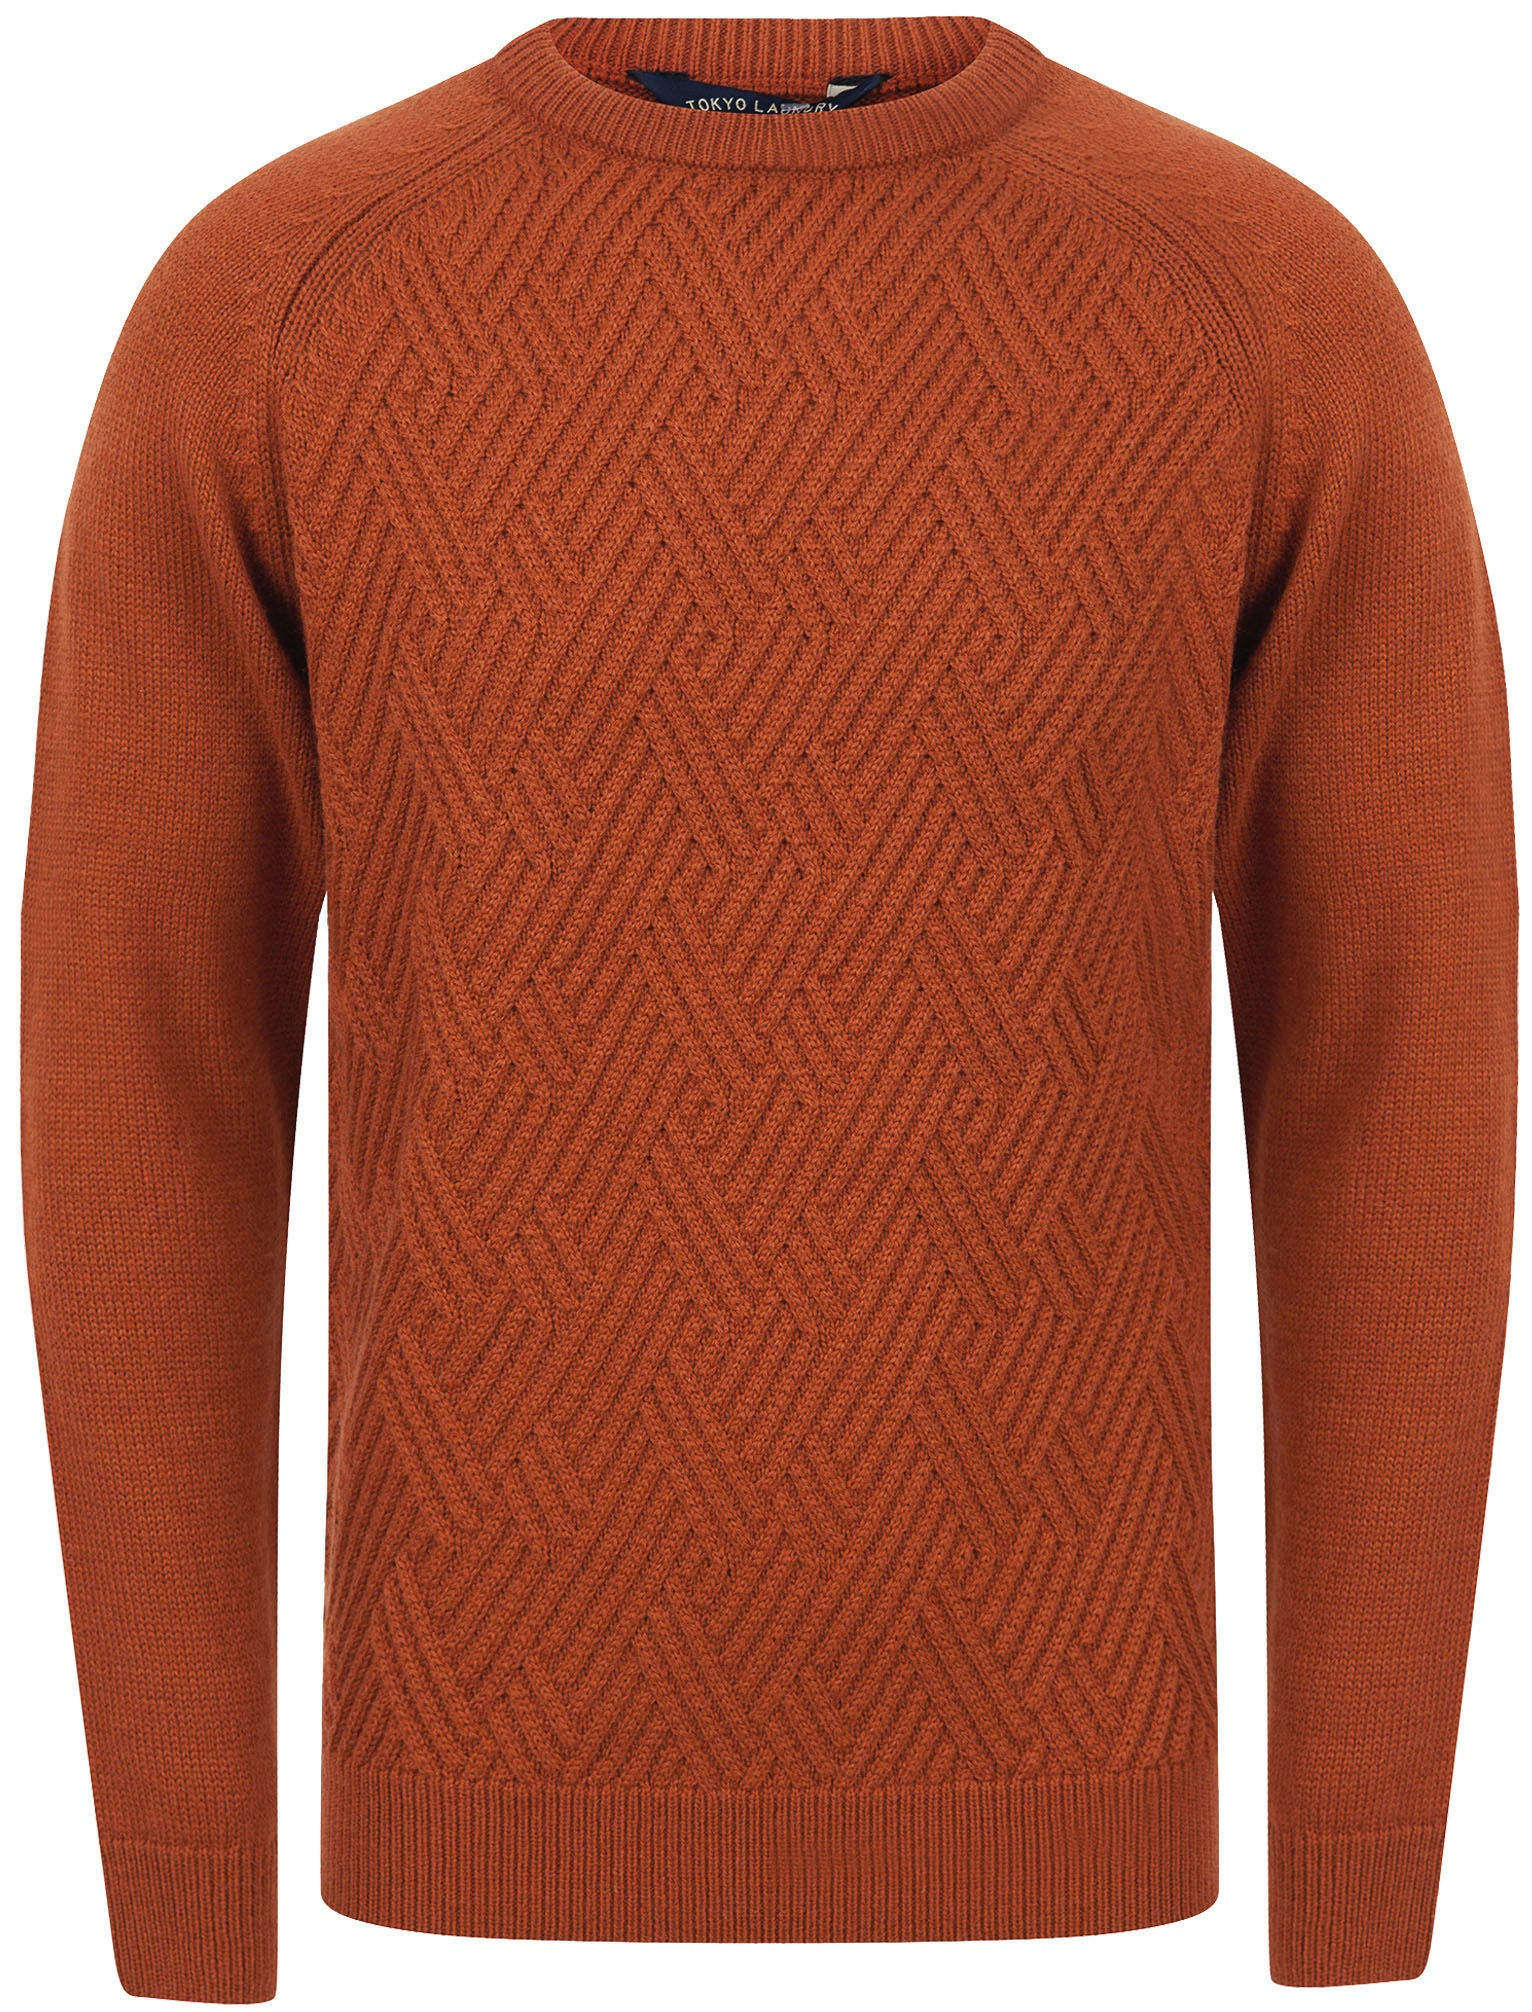 1970s Men's Clothes, Fashion, Outfits Jumpers Woodstock Diamond Texture Wool Blend Knitted Jumper in Rust - Tokyo Laundry  XXL - Tokyo Laundry £24.99 AT vintagedancer.com